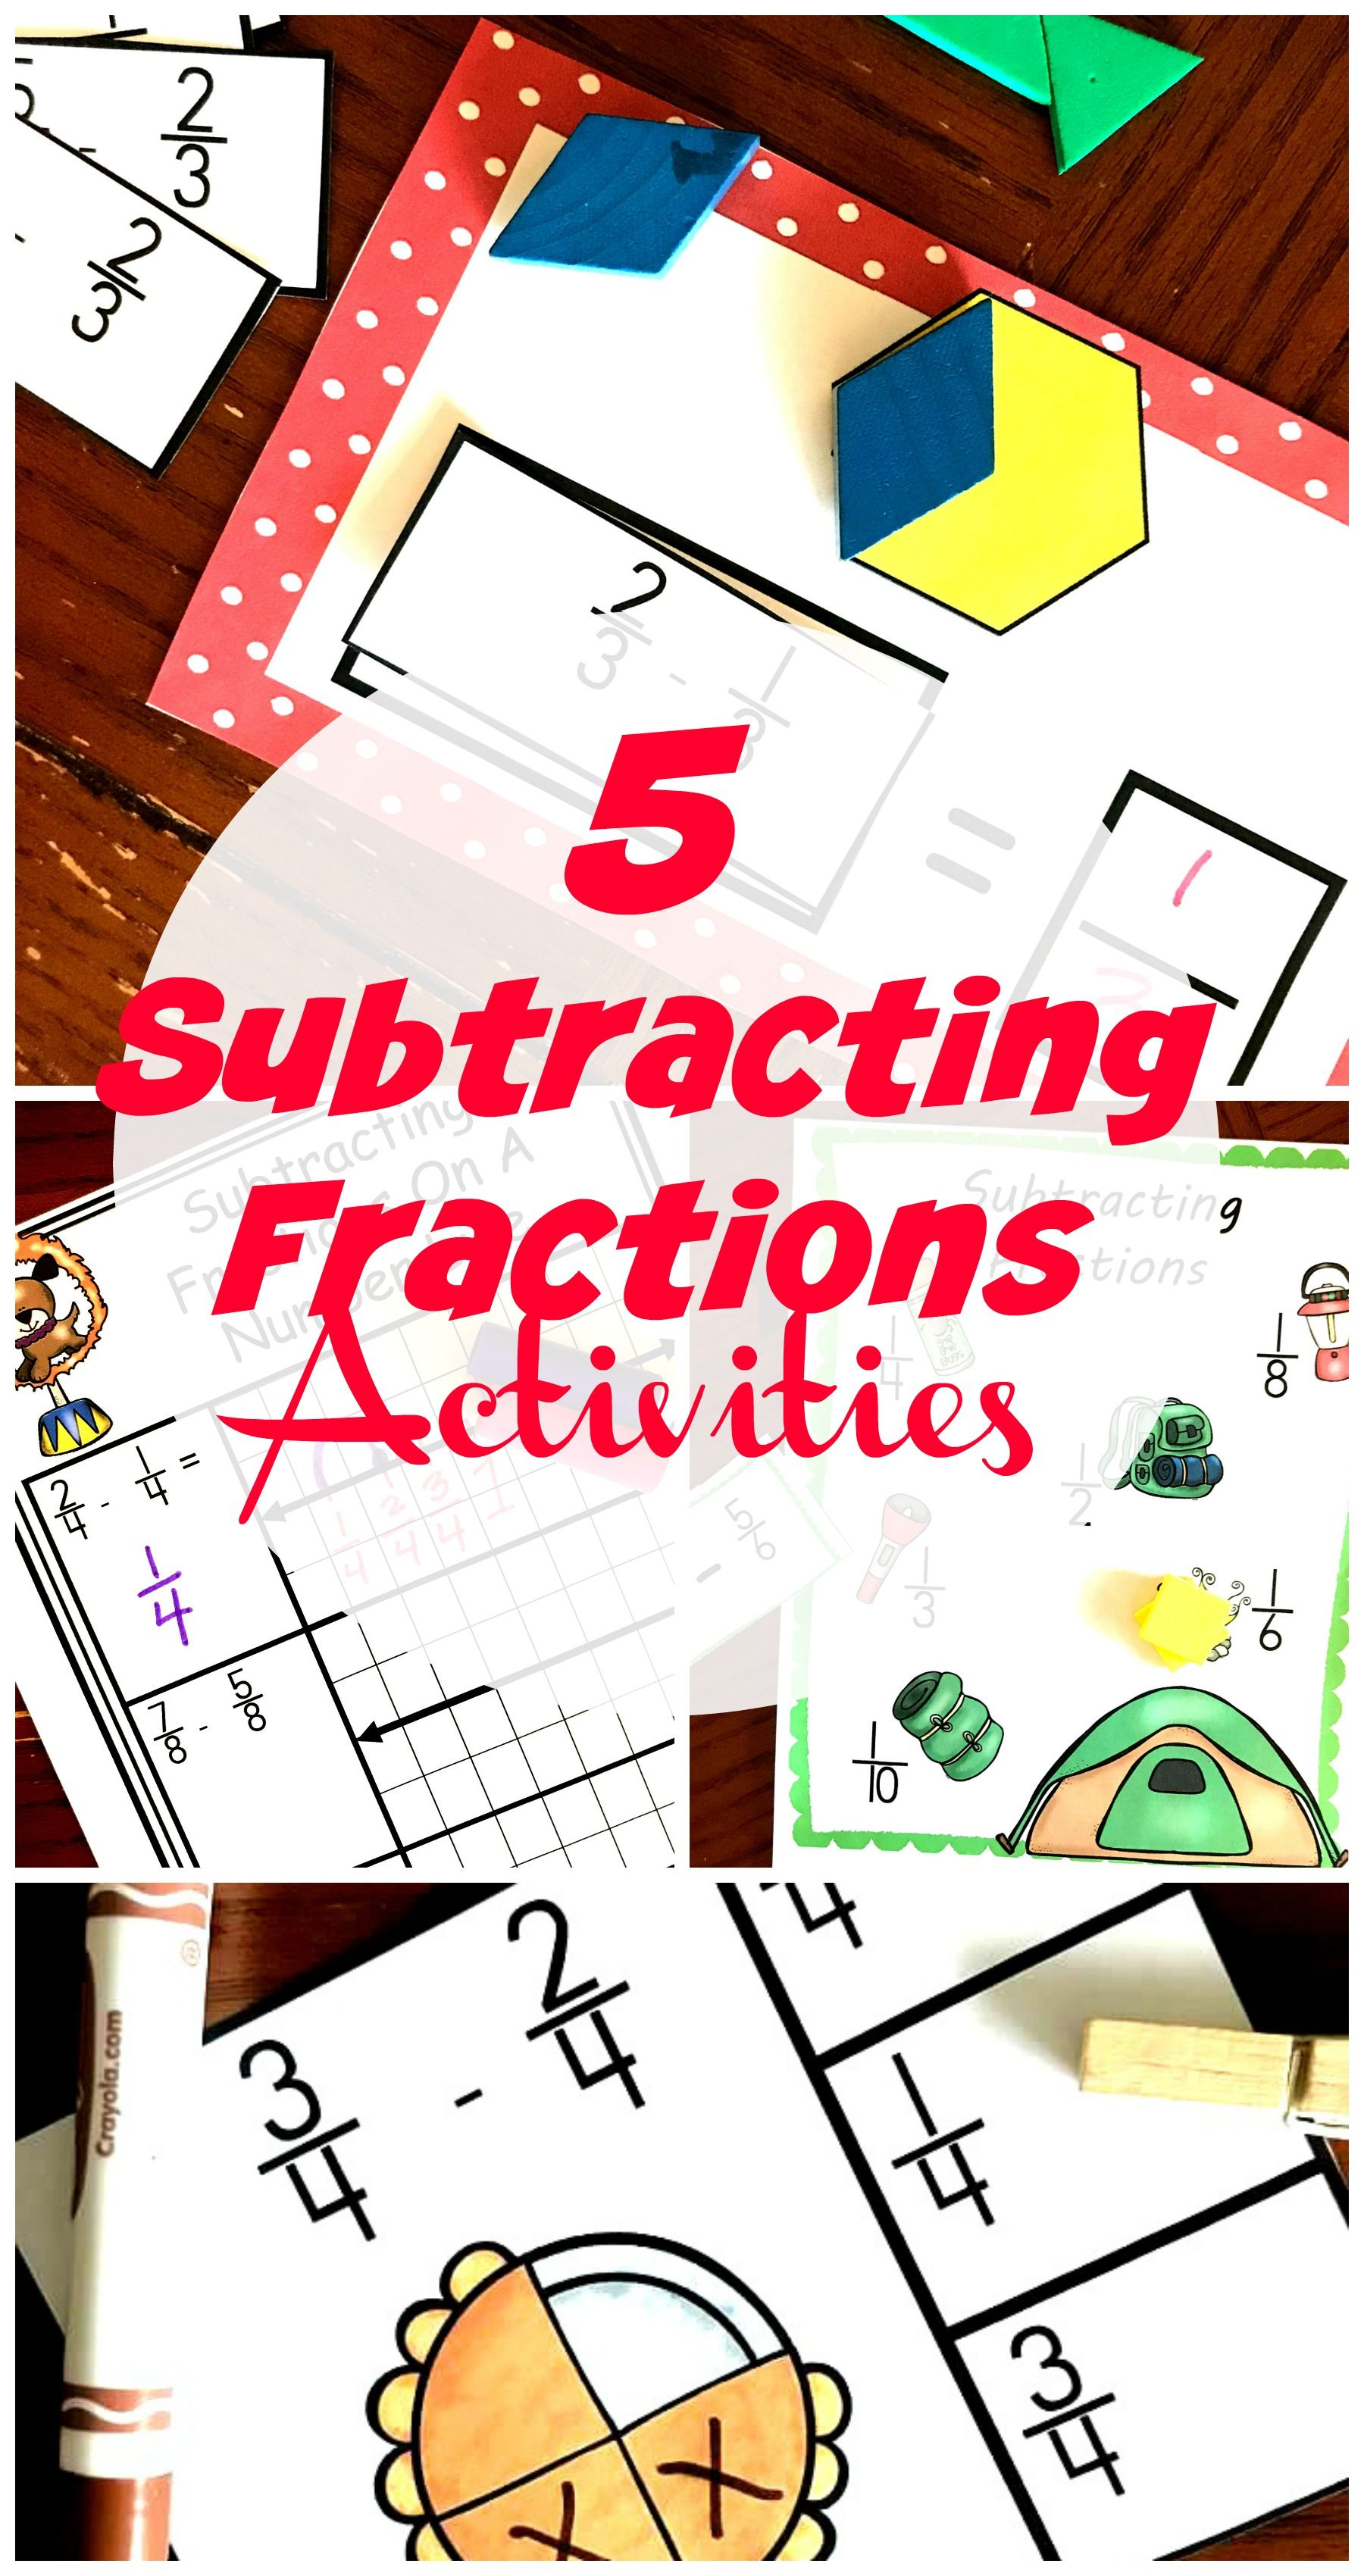 5 Subtracting Fractions With Common Denominators Activites